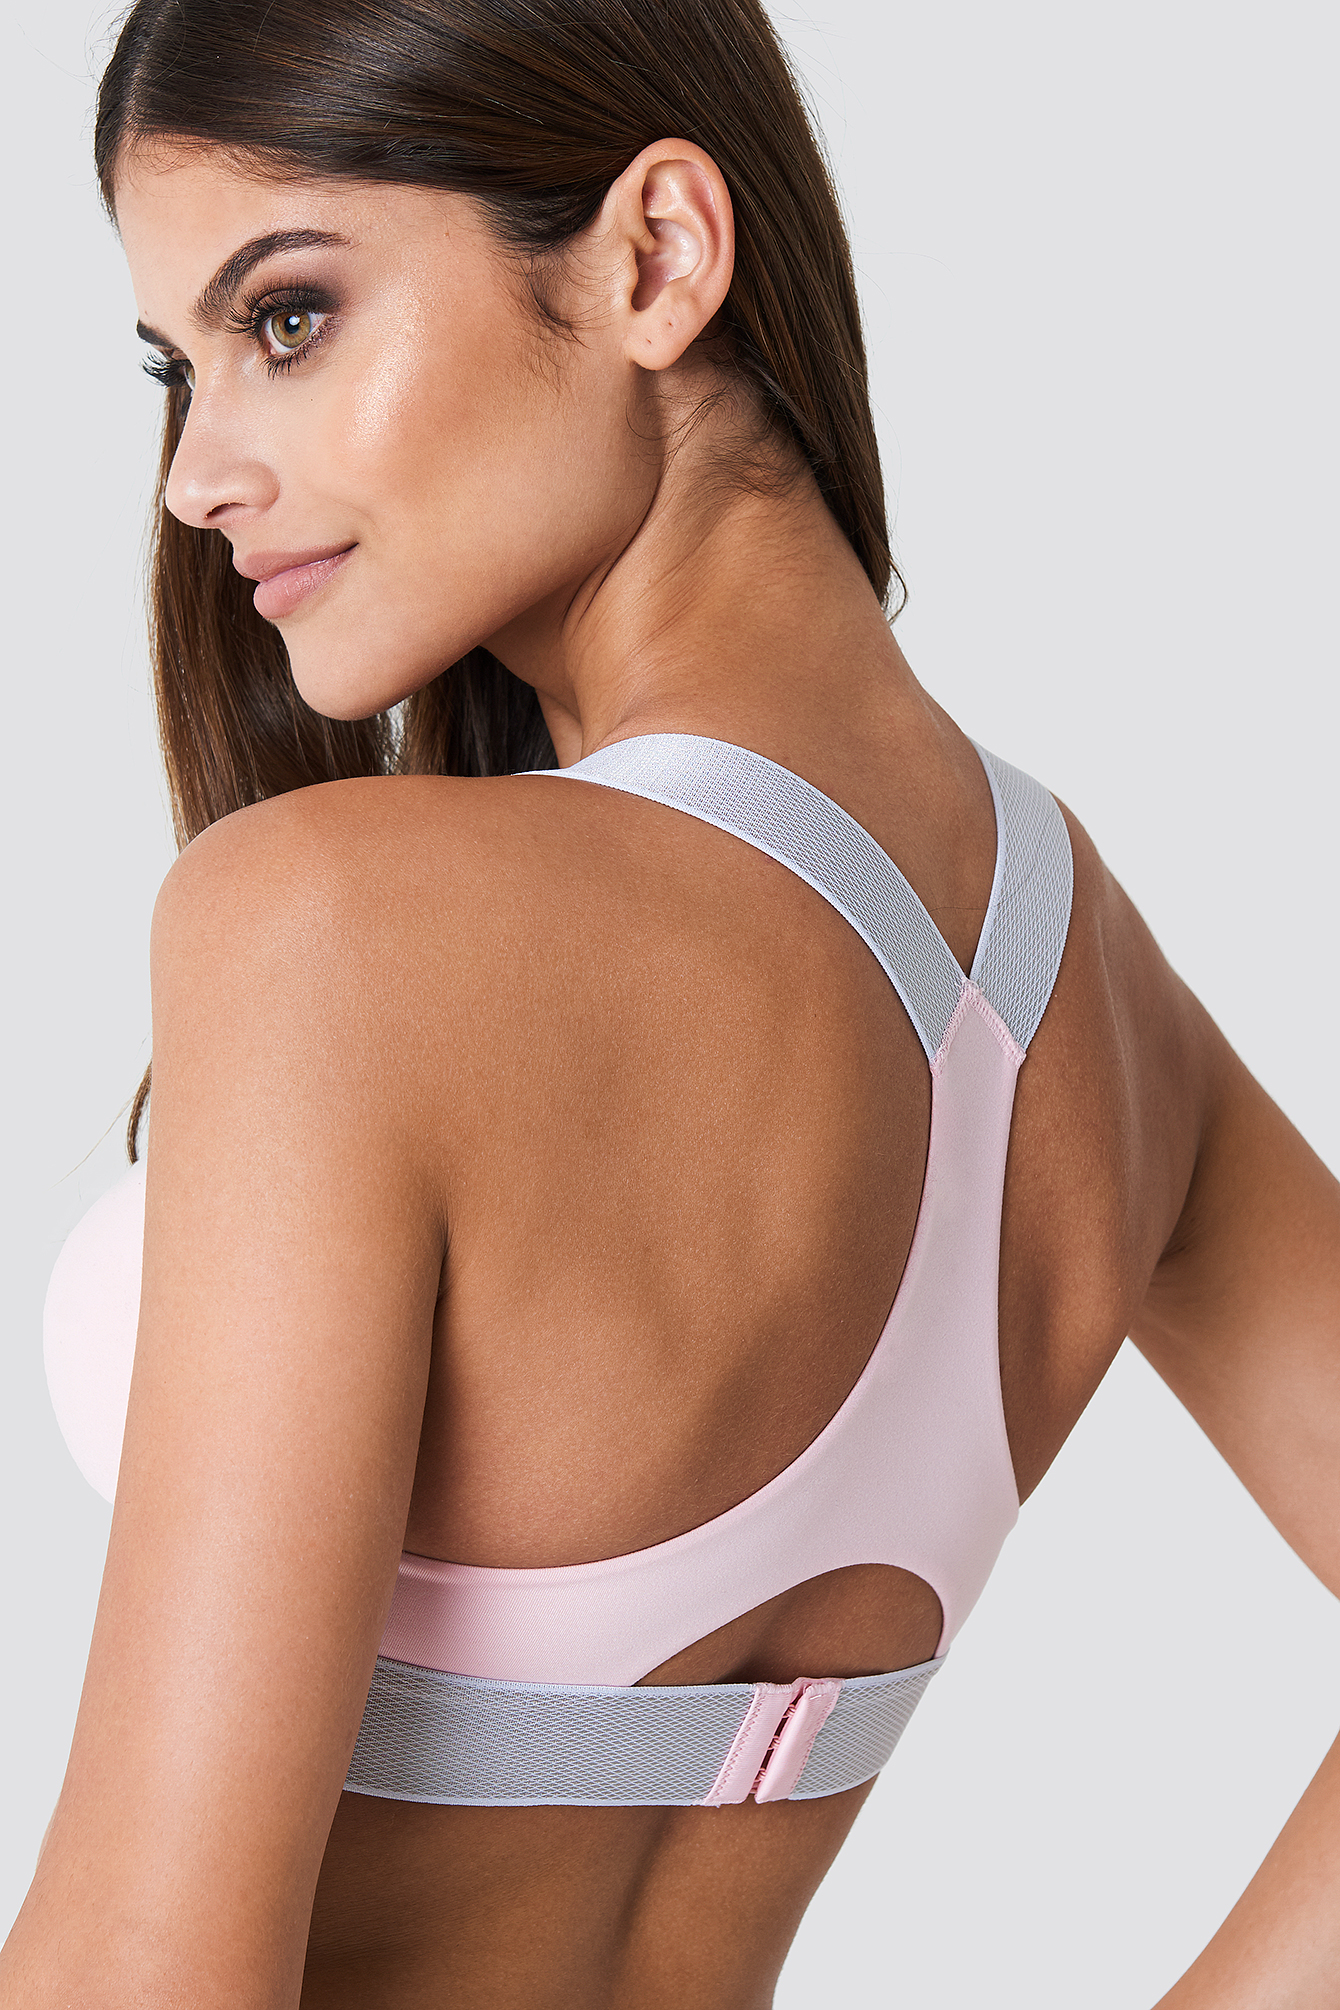 Calvin Klein Customized Stretch Bralette - Pink